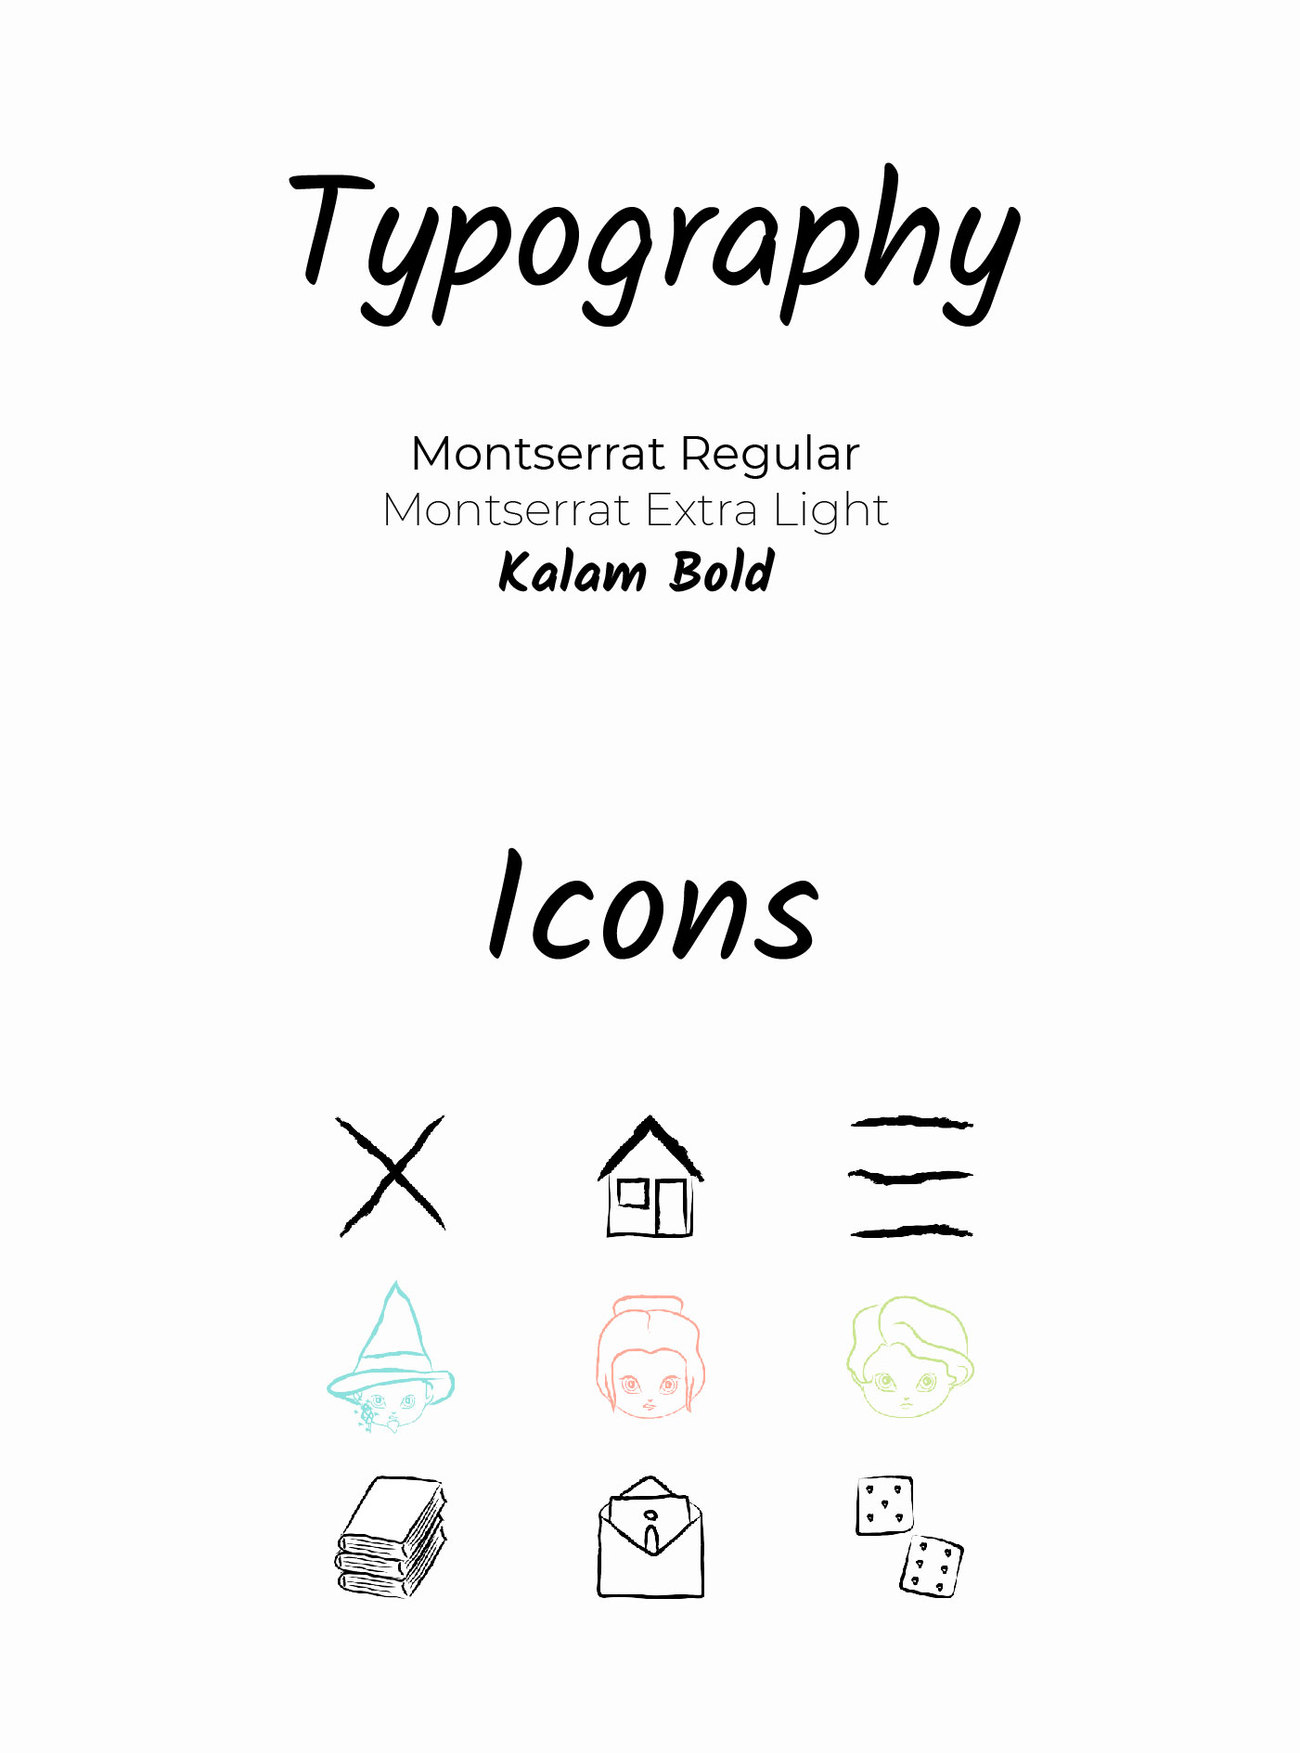 typography and icons